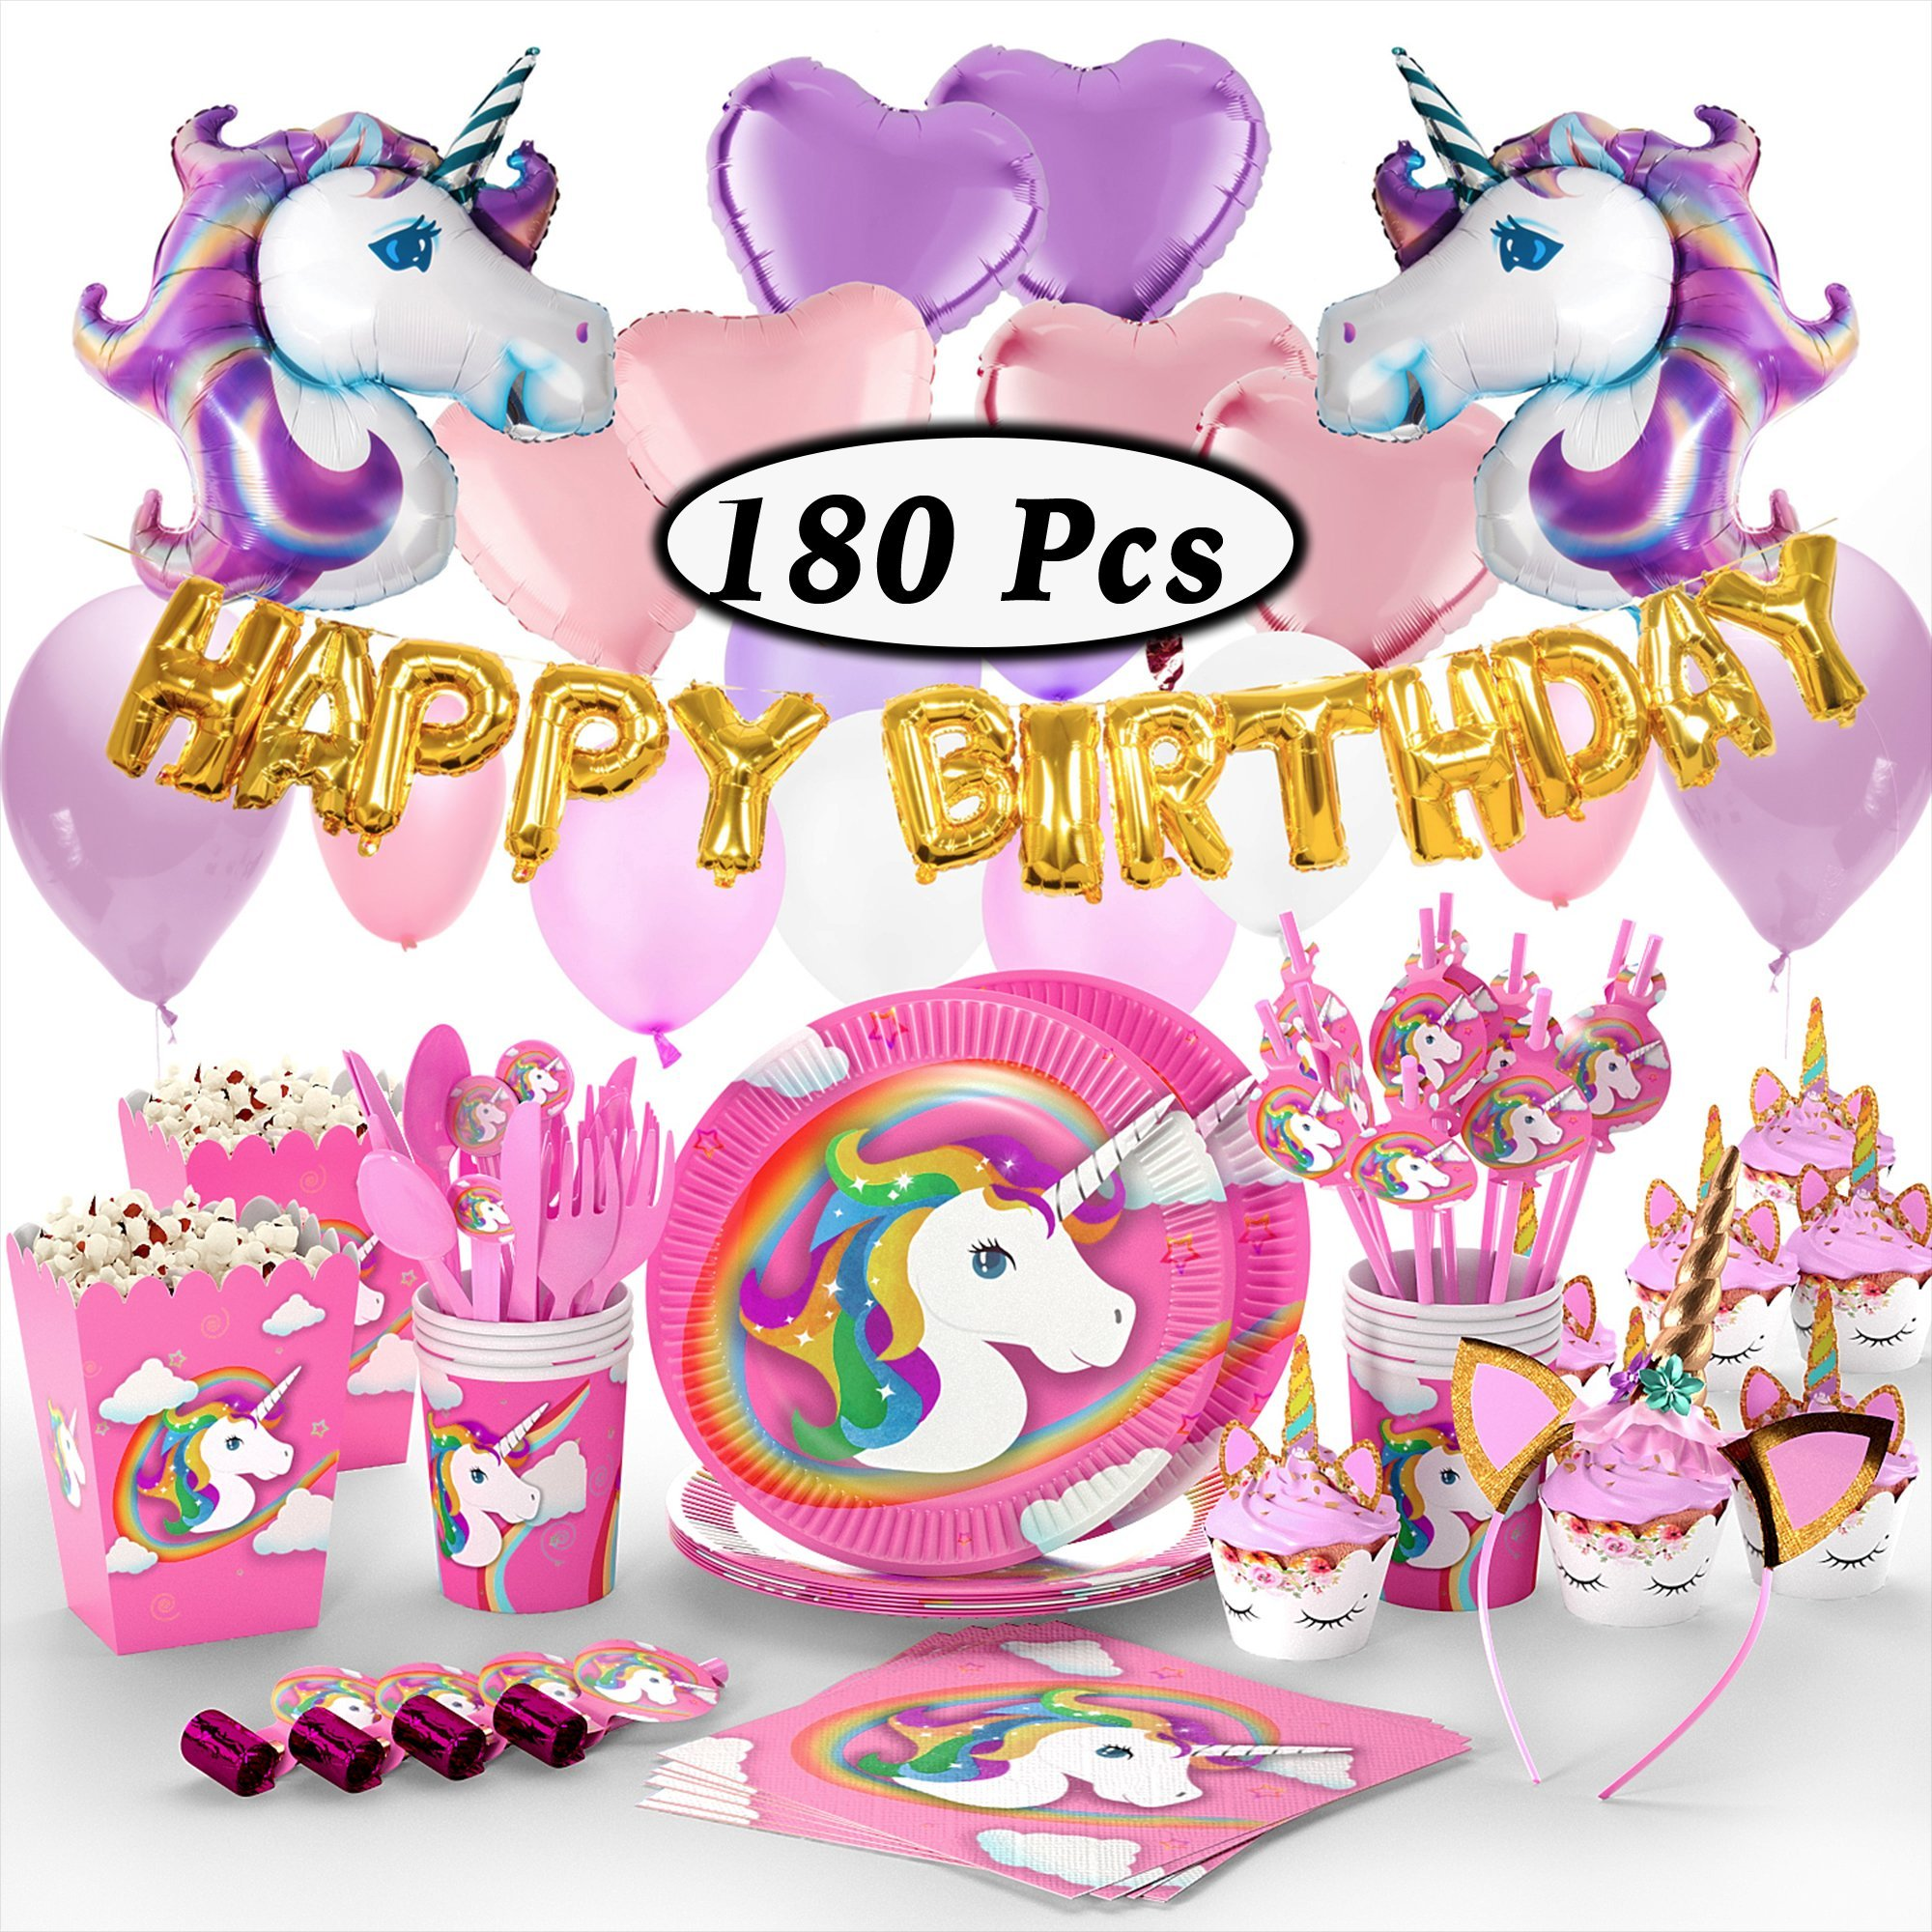 180+ PCS Complete Unicorn Party Supplies & Decorations - Glittery Unicorn Headband | Disposable Tableware Set | 30 Magical Balloons | 24 Pc Unicorn Cupcake Wrappers & Toppers | Party Favors by Party Supply Pros